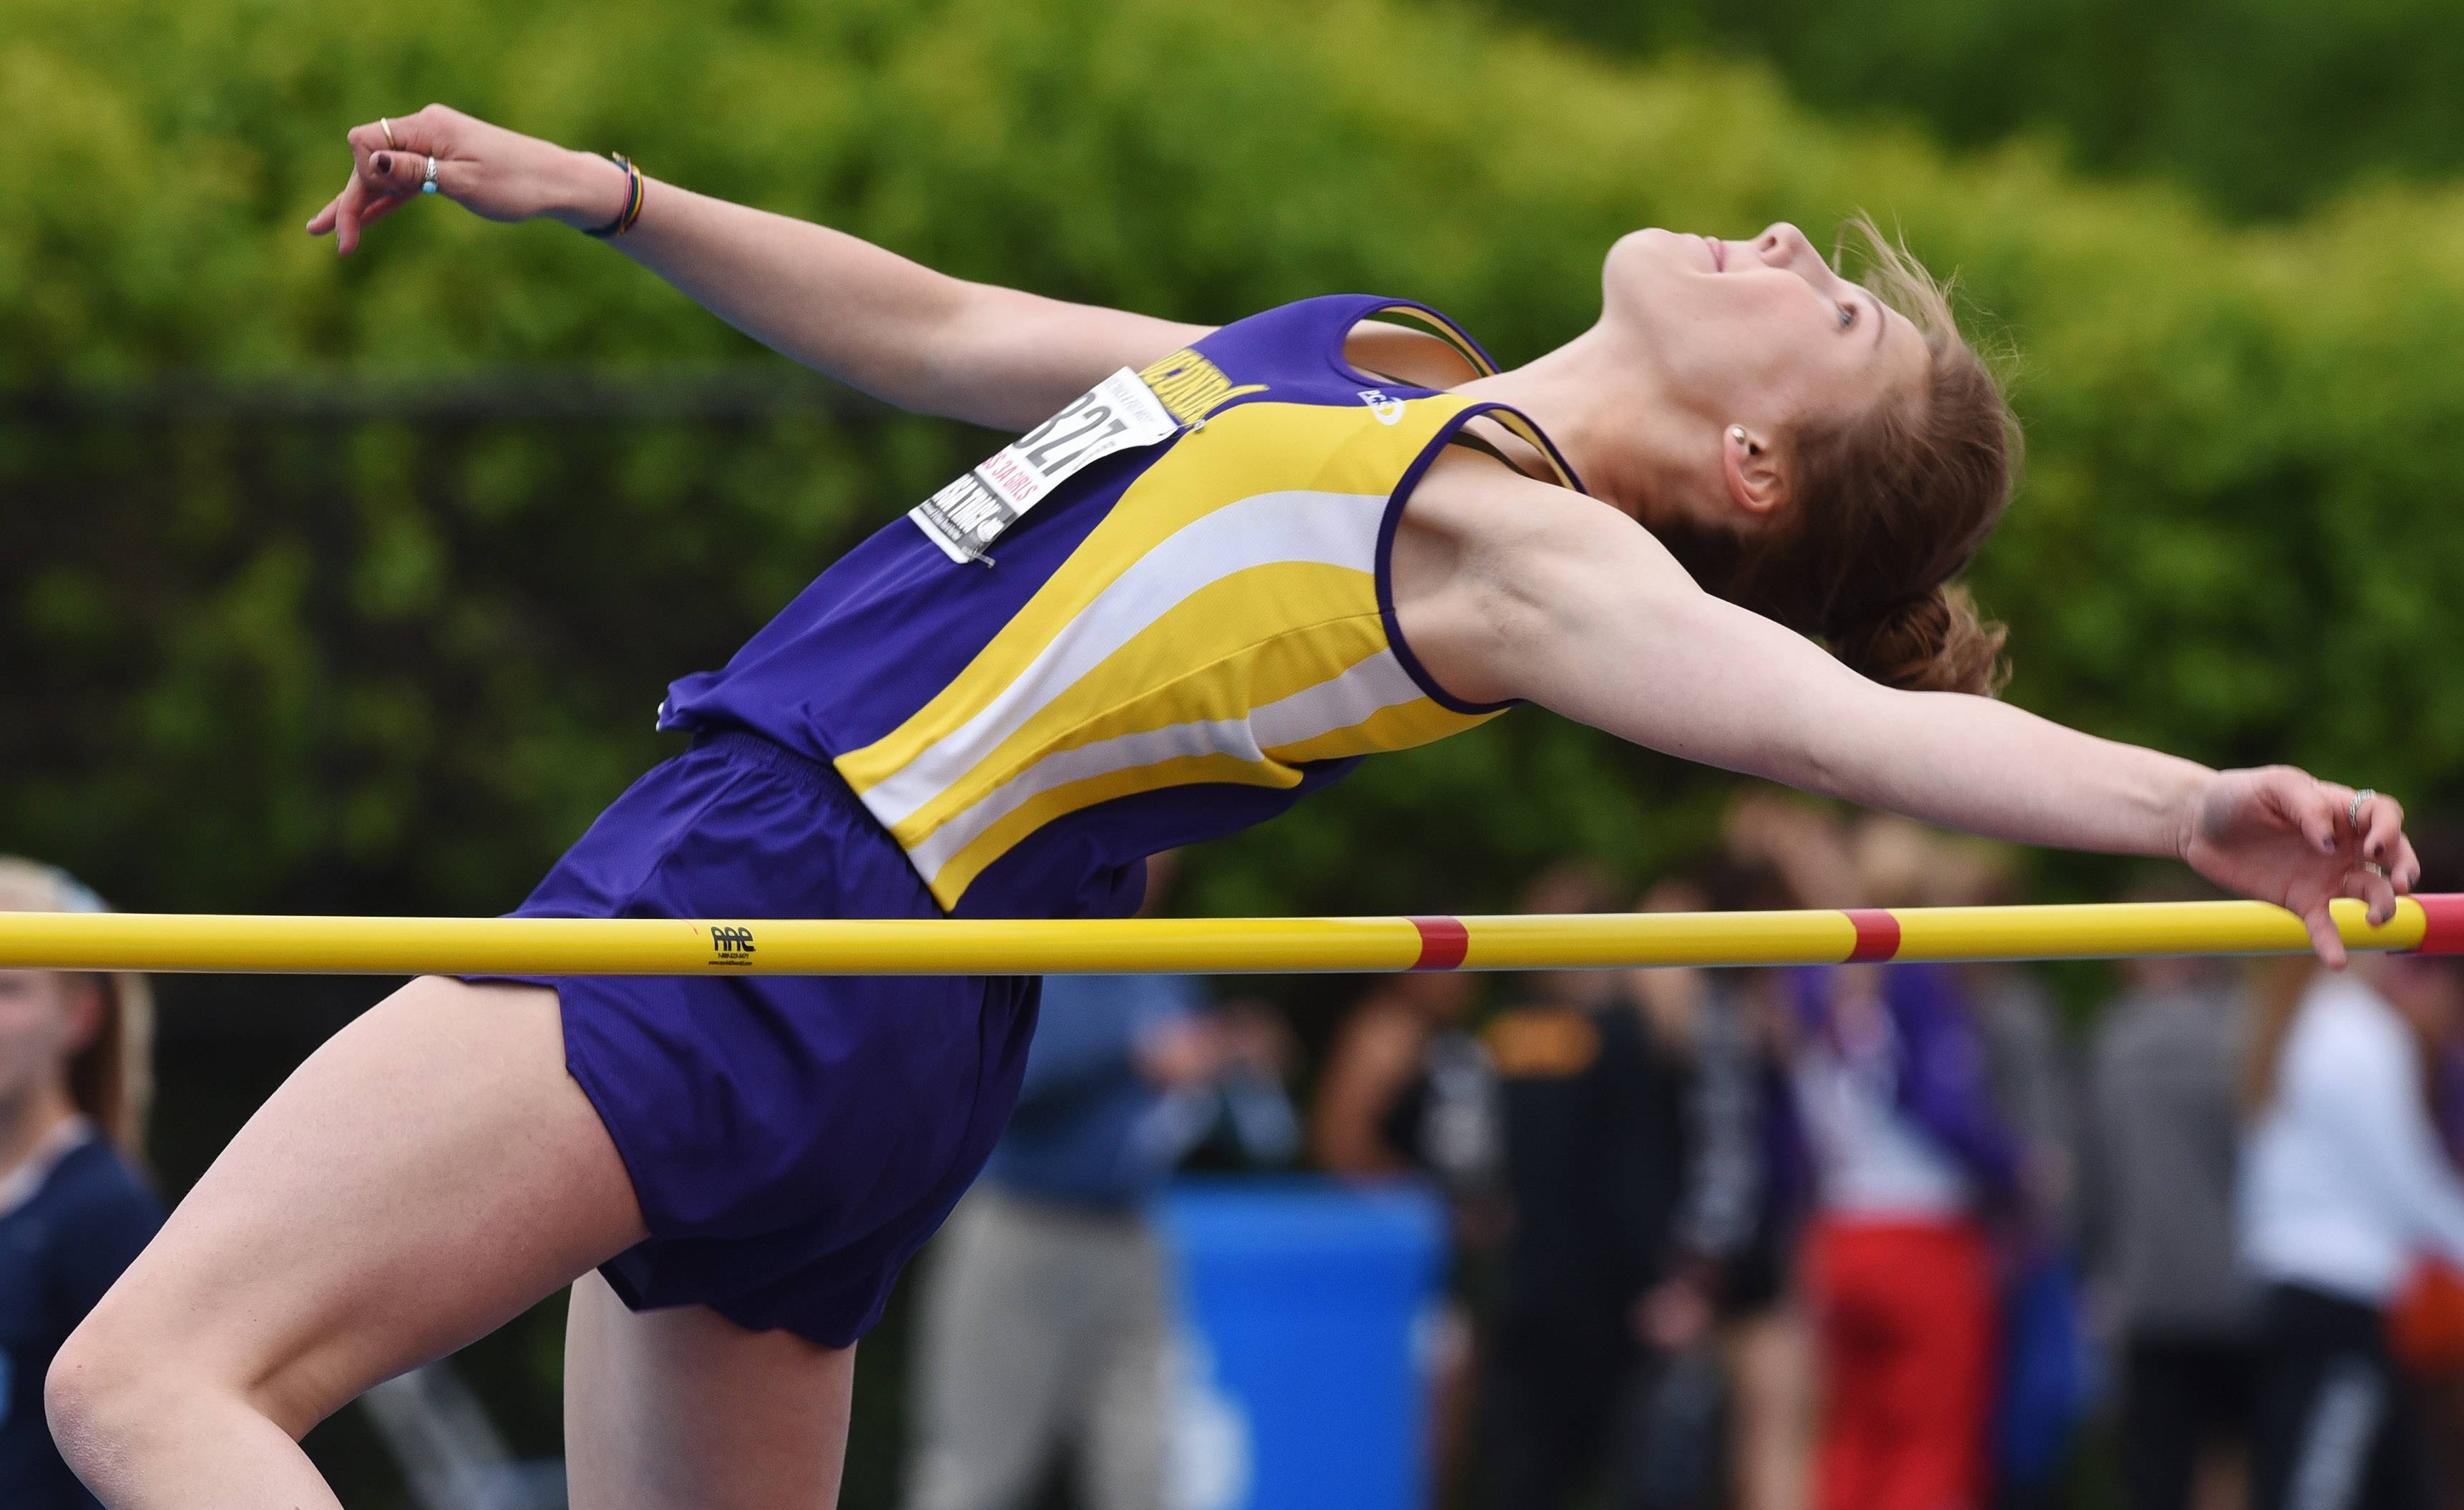 Wauconda's Grace Daun competes in the high jump during the Class 3A girls track and field state meet preliminaries in Charleston on Friday.